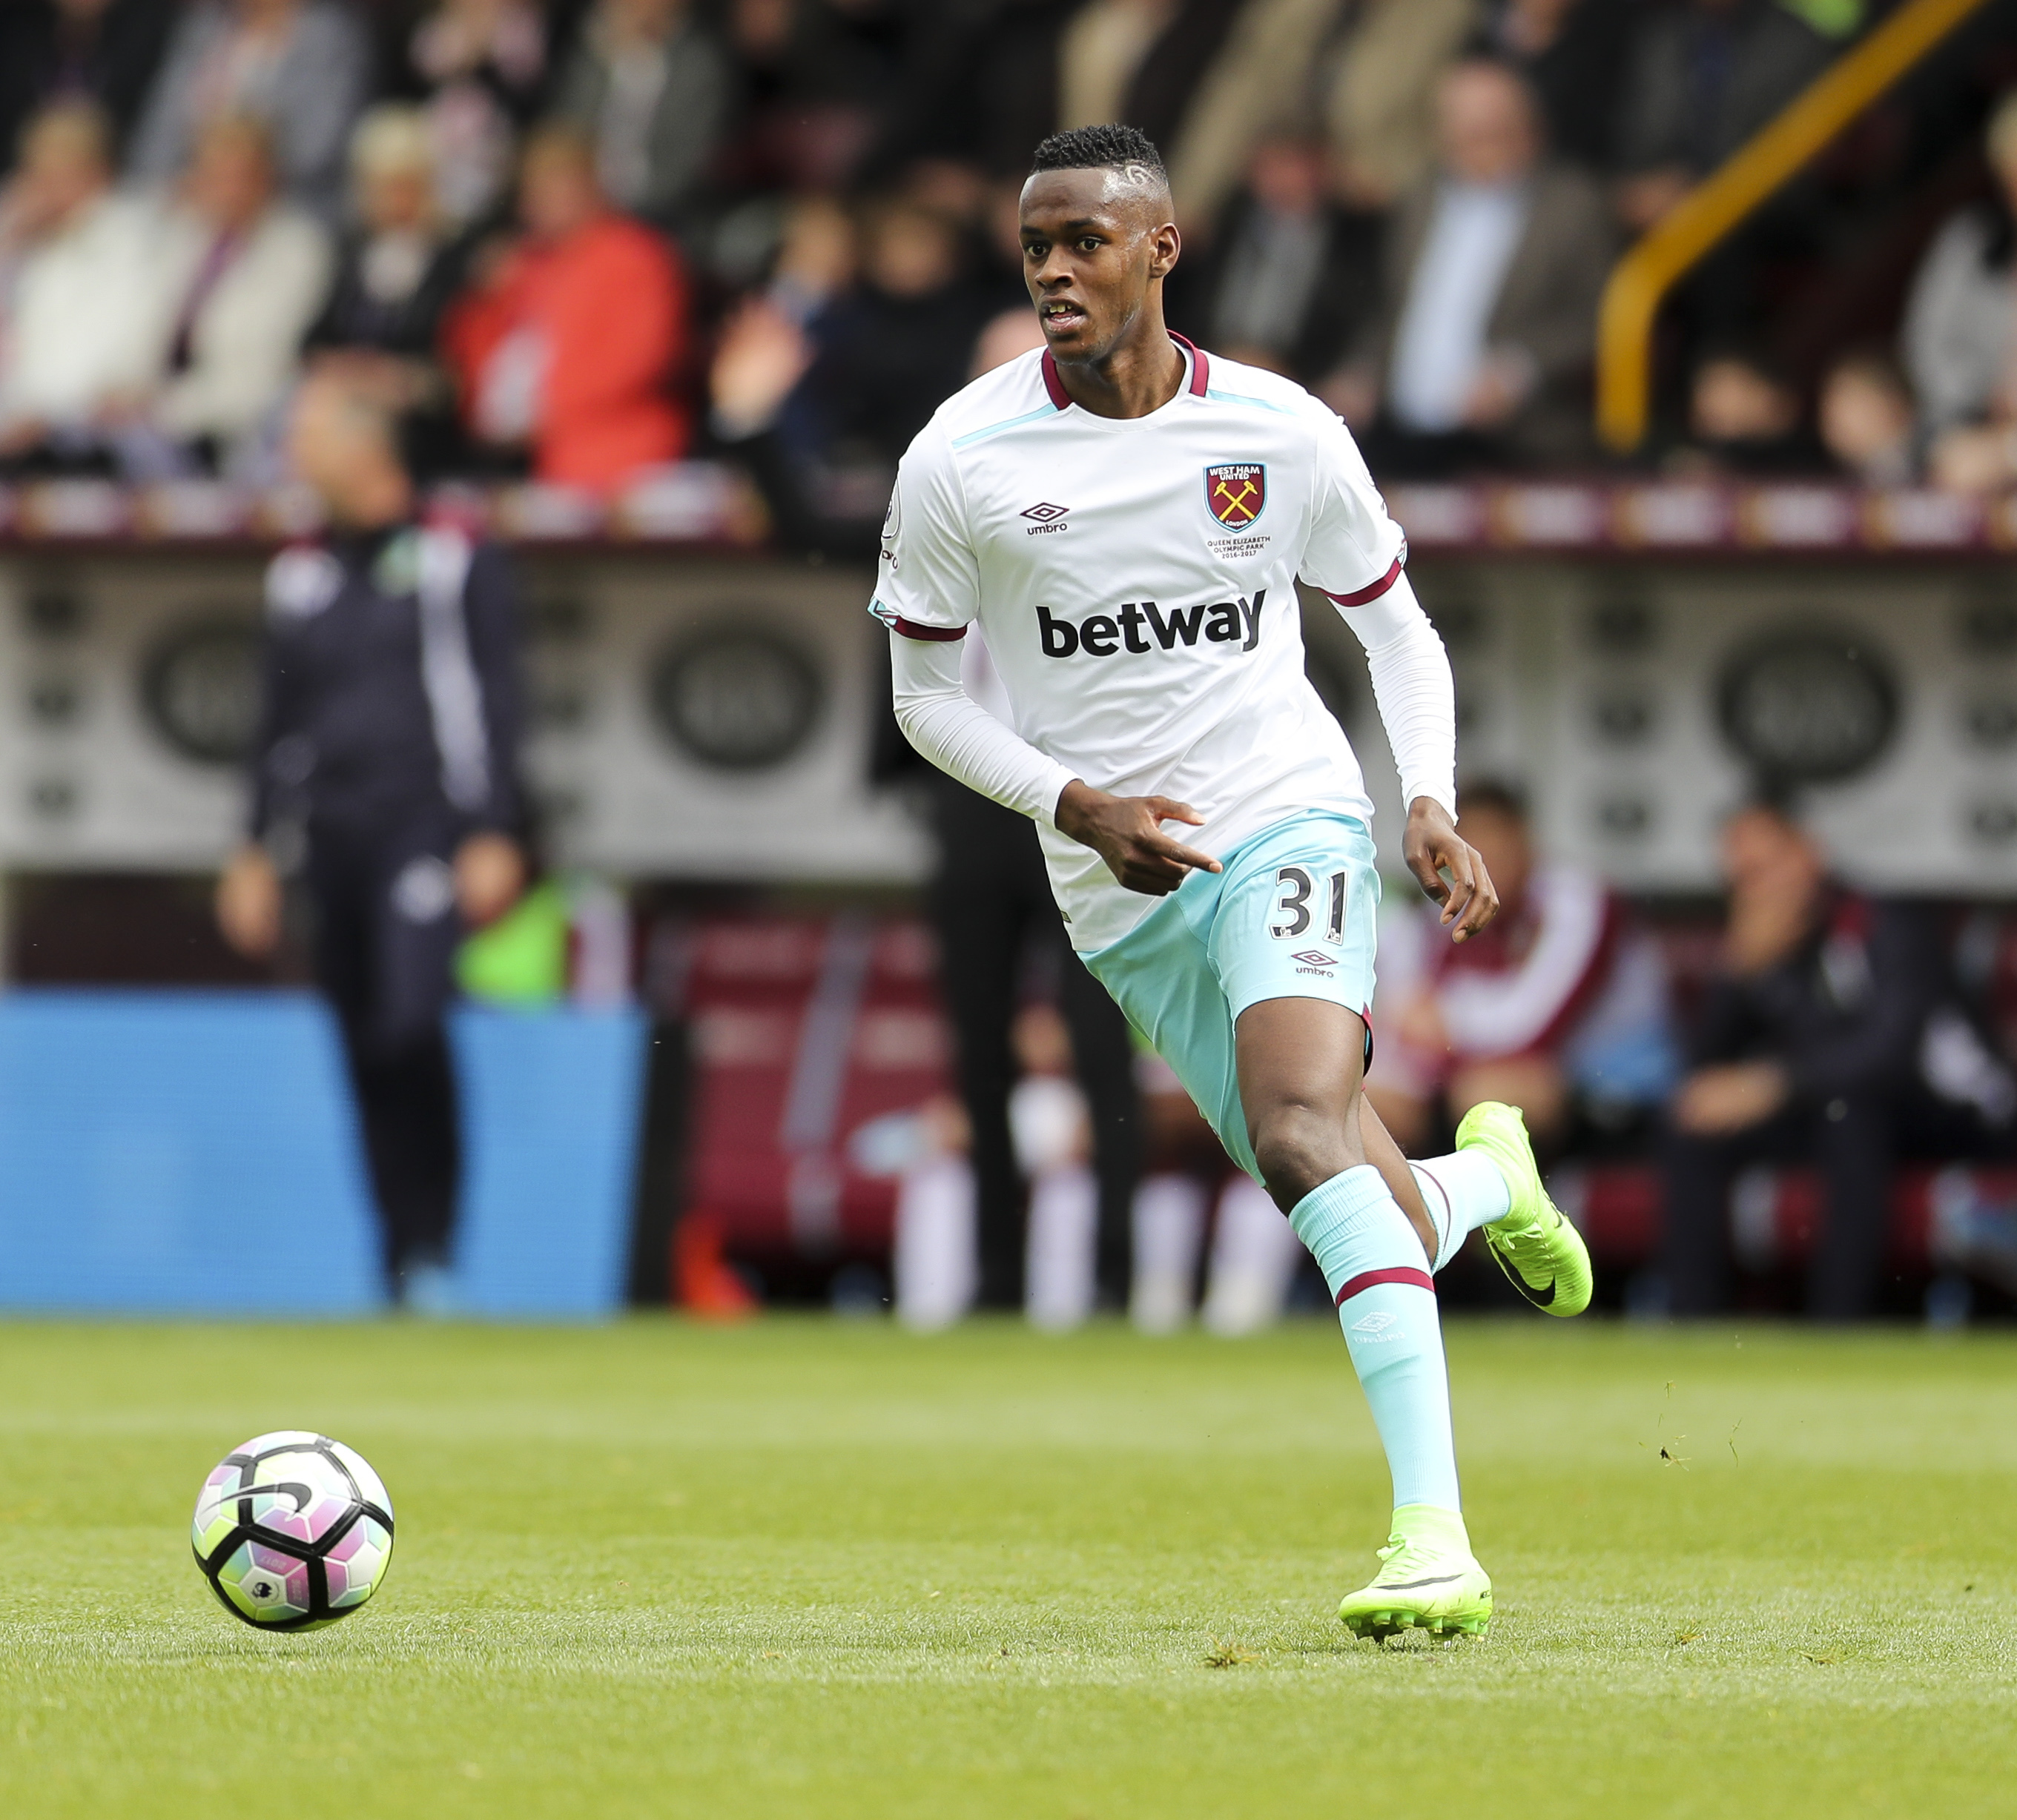 Bilic warns West Ham youngster not to 'think he is Mbappe'